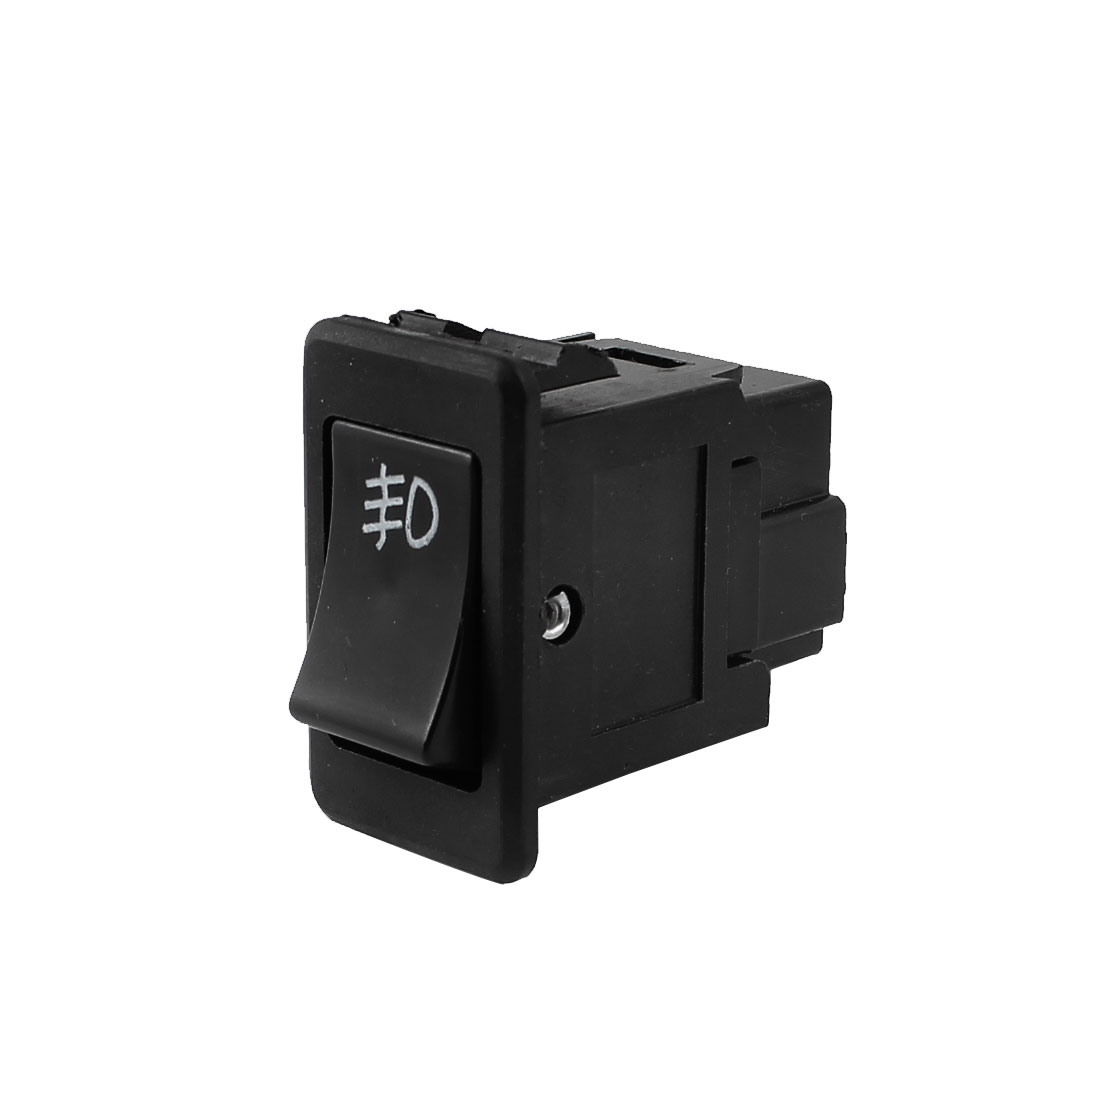 DC 12V SPST ON OFF 2 Pin Rocker Boat Switch Black for Car Fog Light Lamp